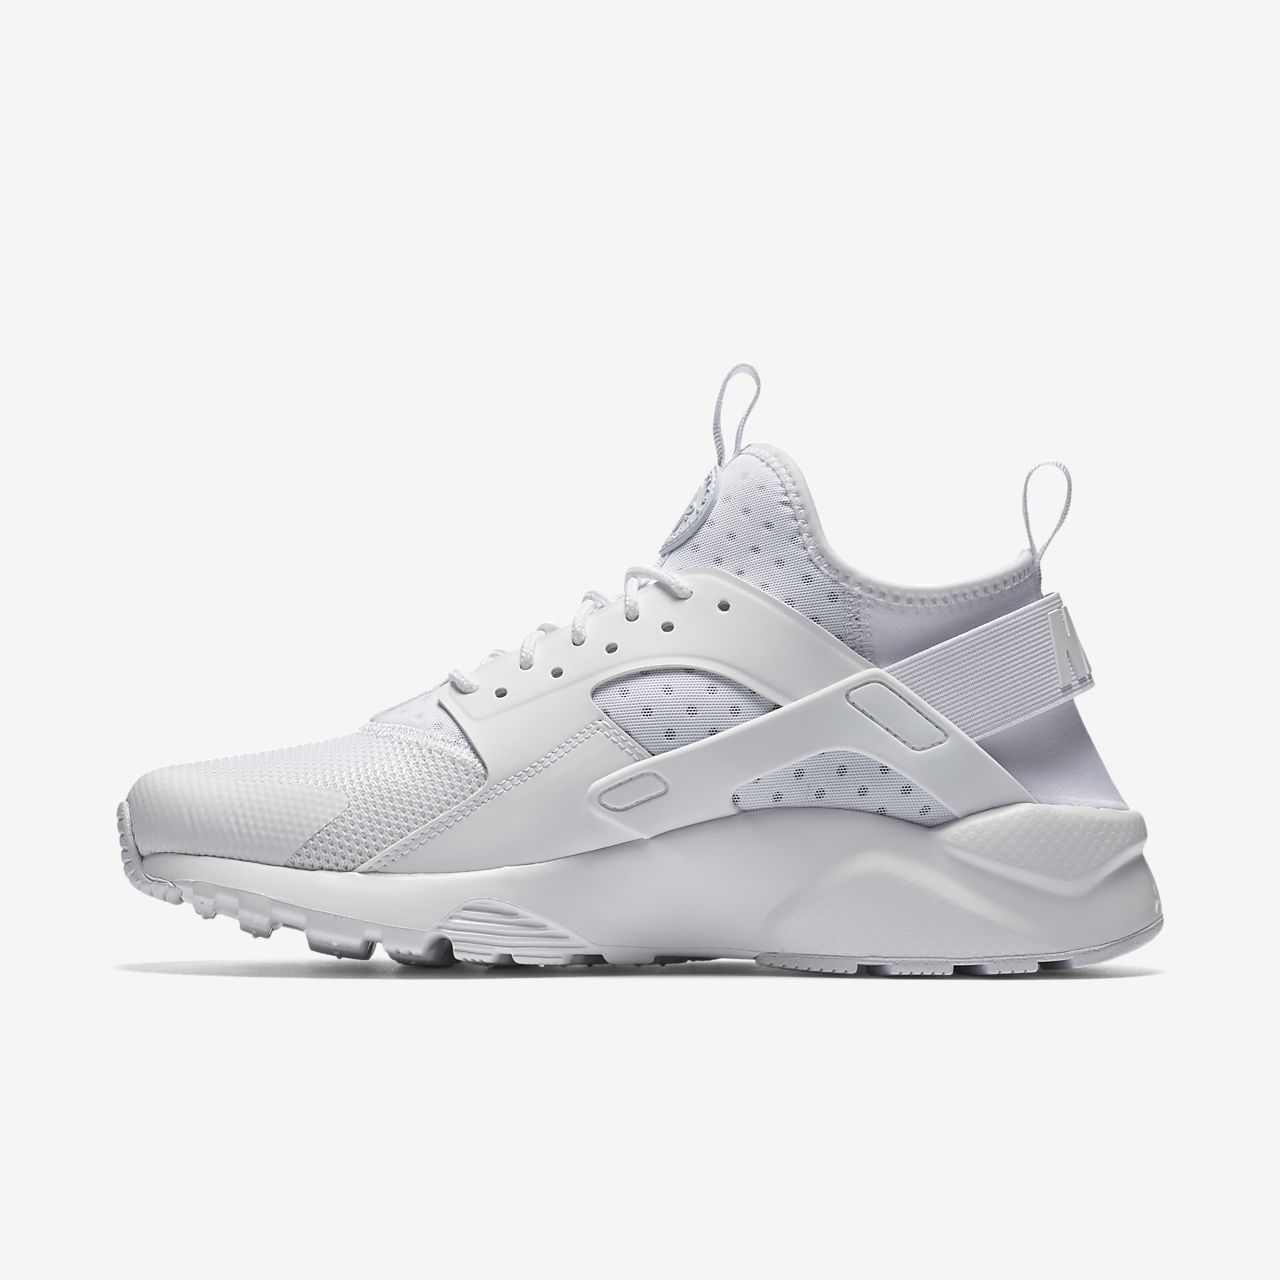 hot sale online 7e53b 394e4 ... Nike Air Huarache Ultra Men s Shoe